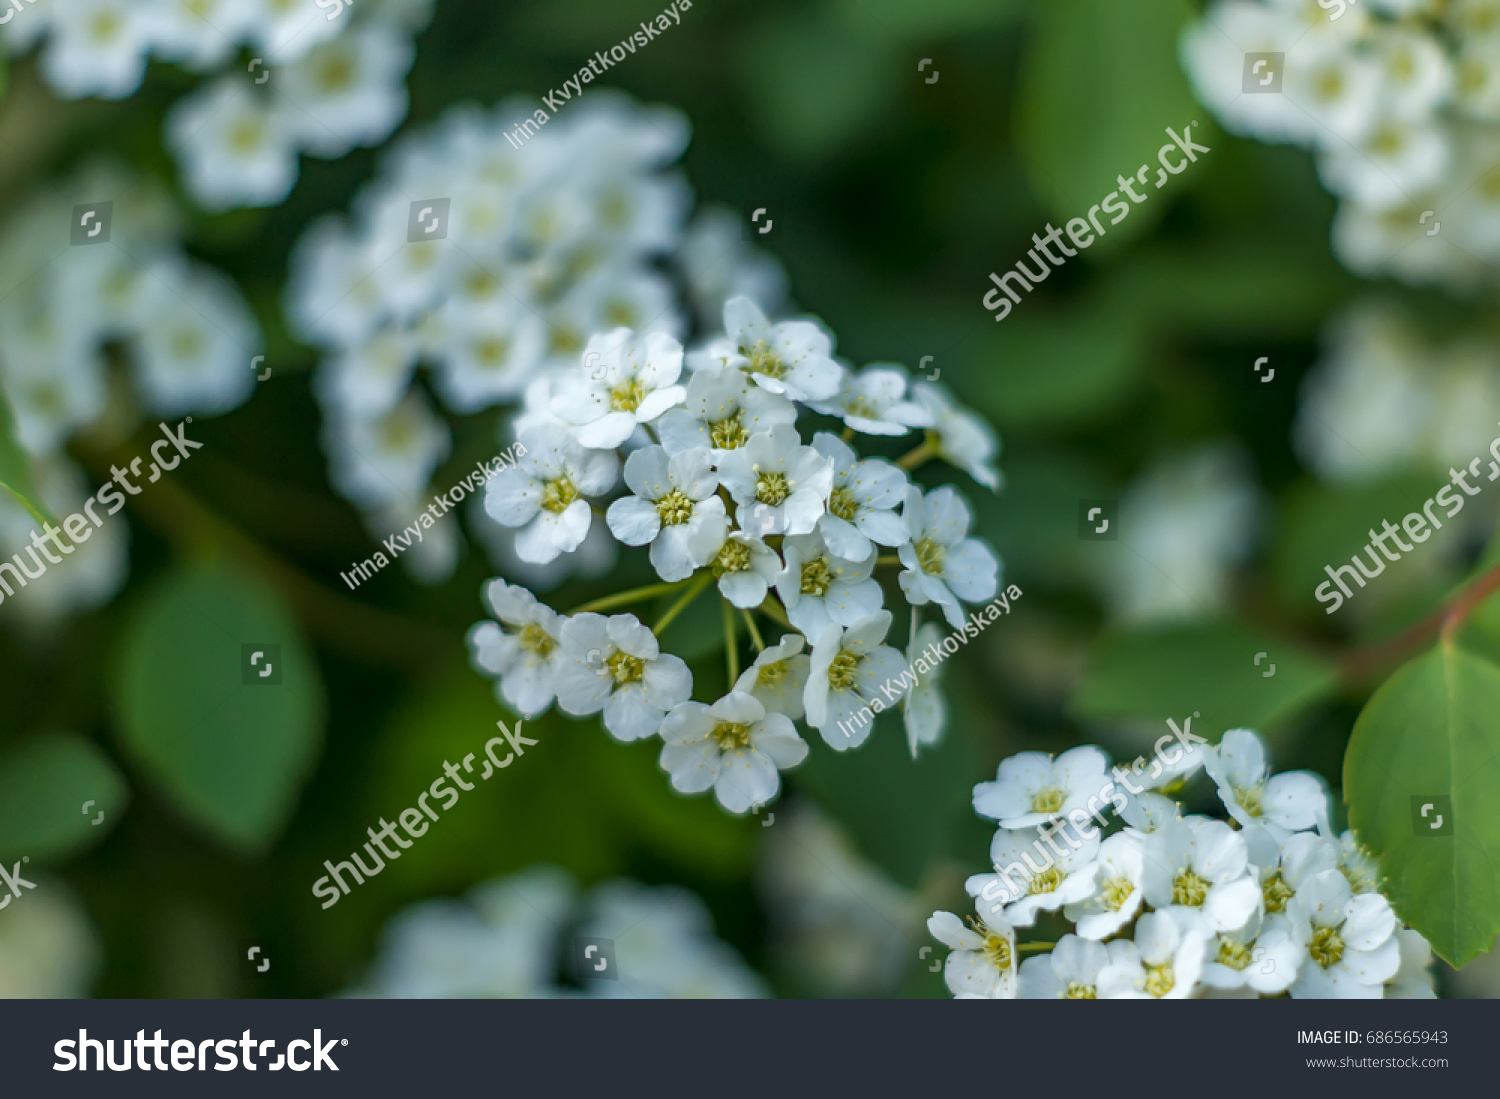 Closeup of small white flowers on bush floral background ez canvas id 686565943 mightylinksfo